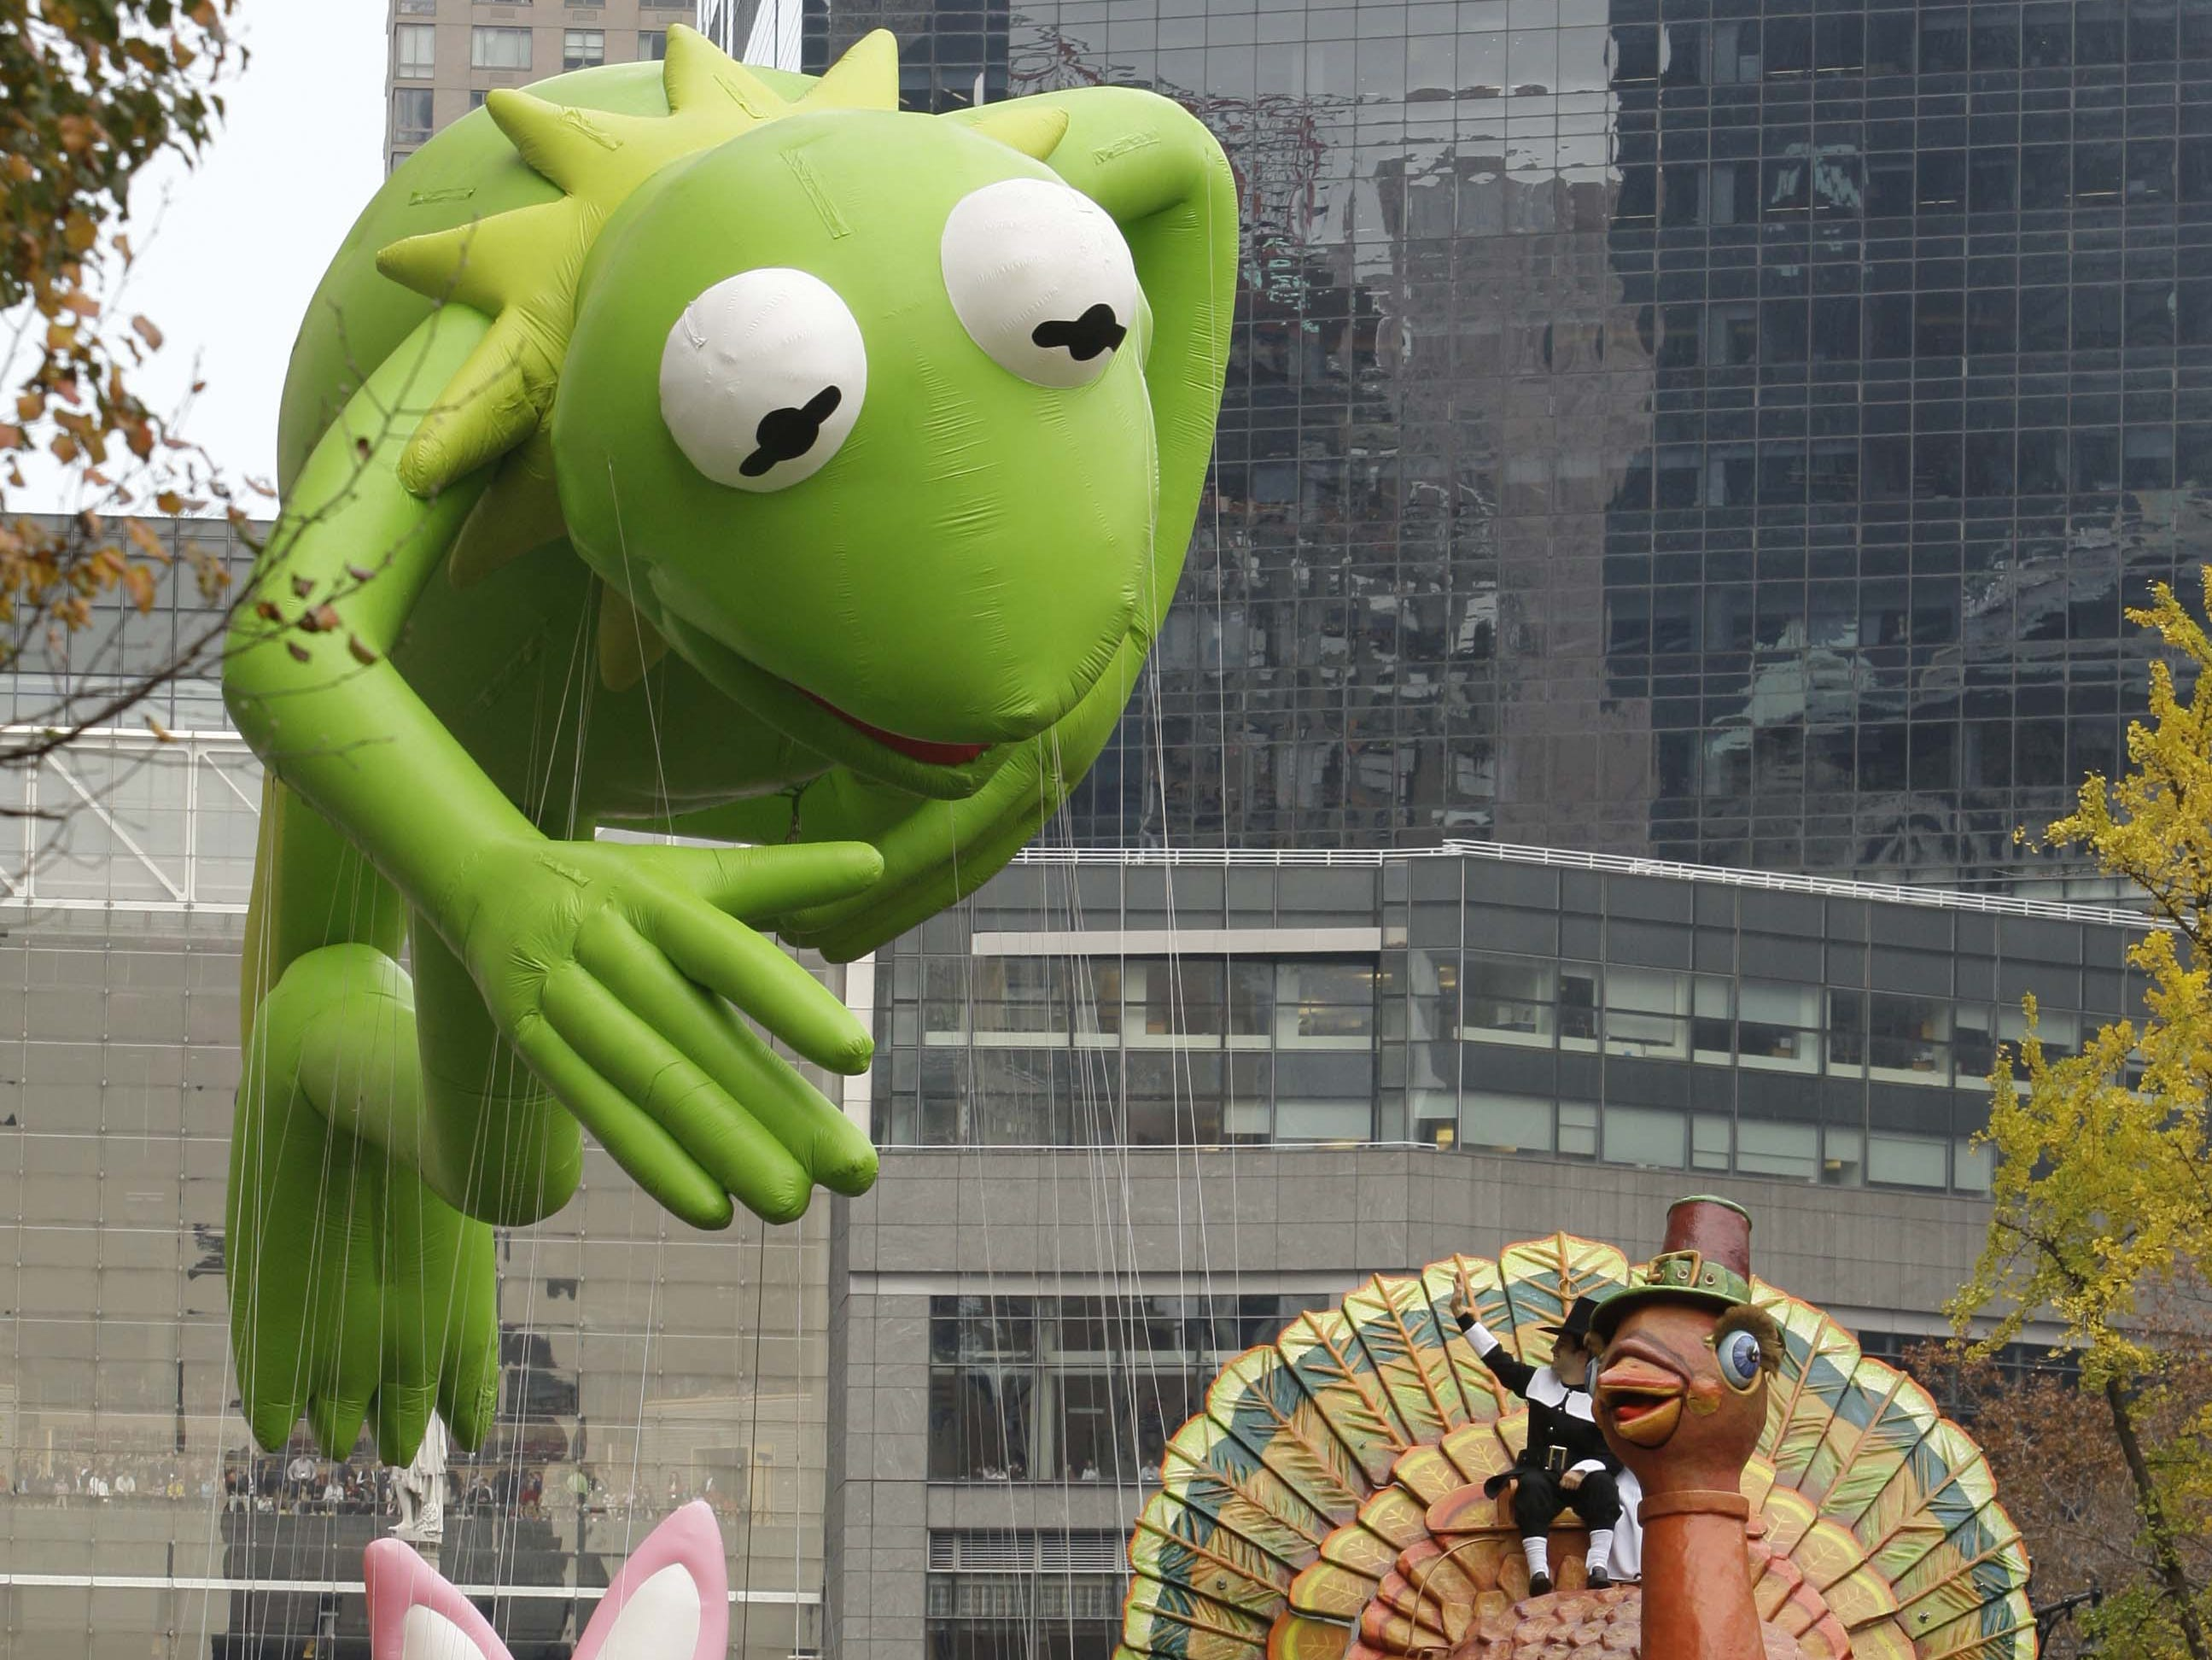 The Kermit the Frog and the Energizer Bunny floats are guided across Central Park South during the Macy's Thanksgiving Day Parade Thursday, Nov. 26, 2009 in New York. (AP Photo/Frank Franklin II)